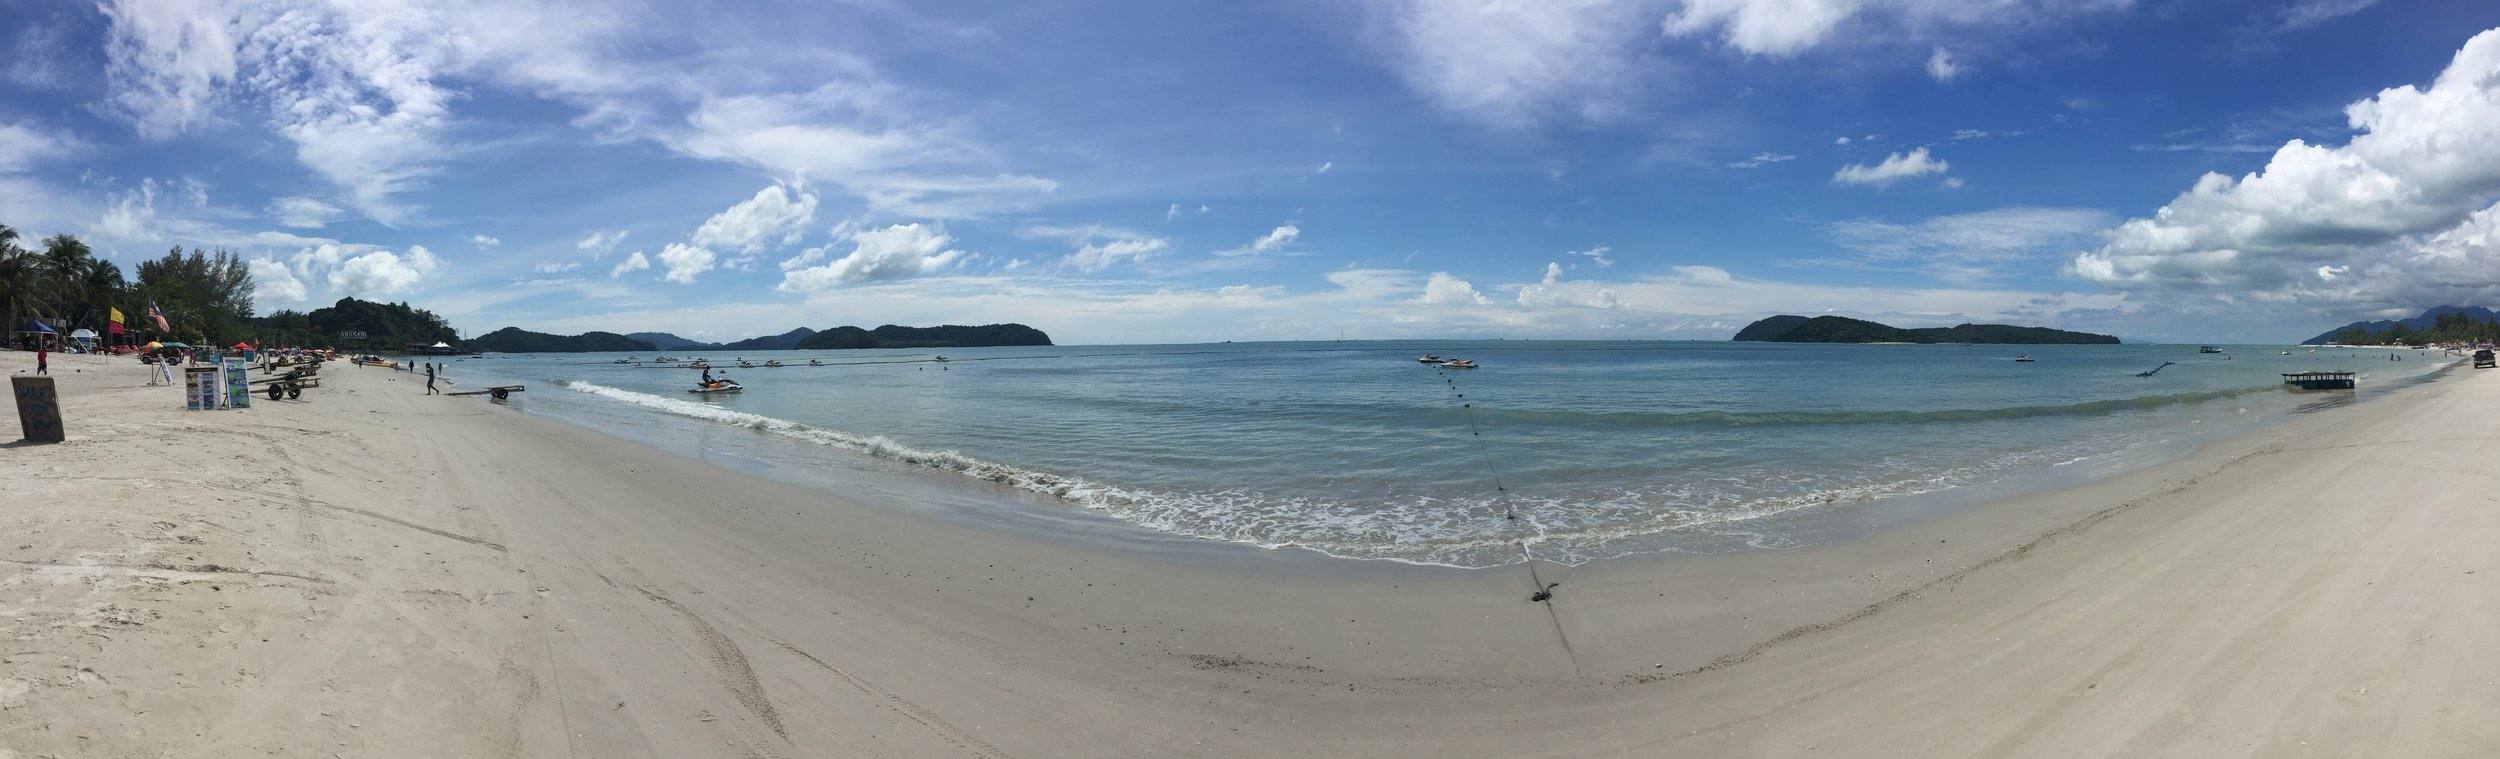 Cenang beach, on the southwestern side of Langkawi, a small island a few hours' ferry ride from Penang.